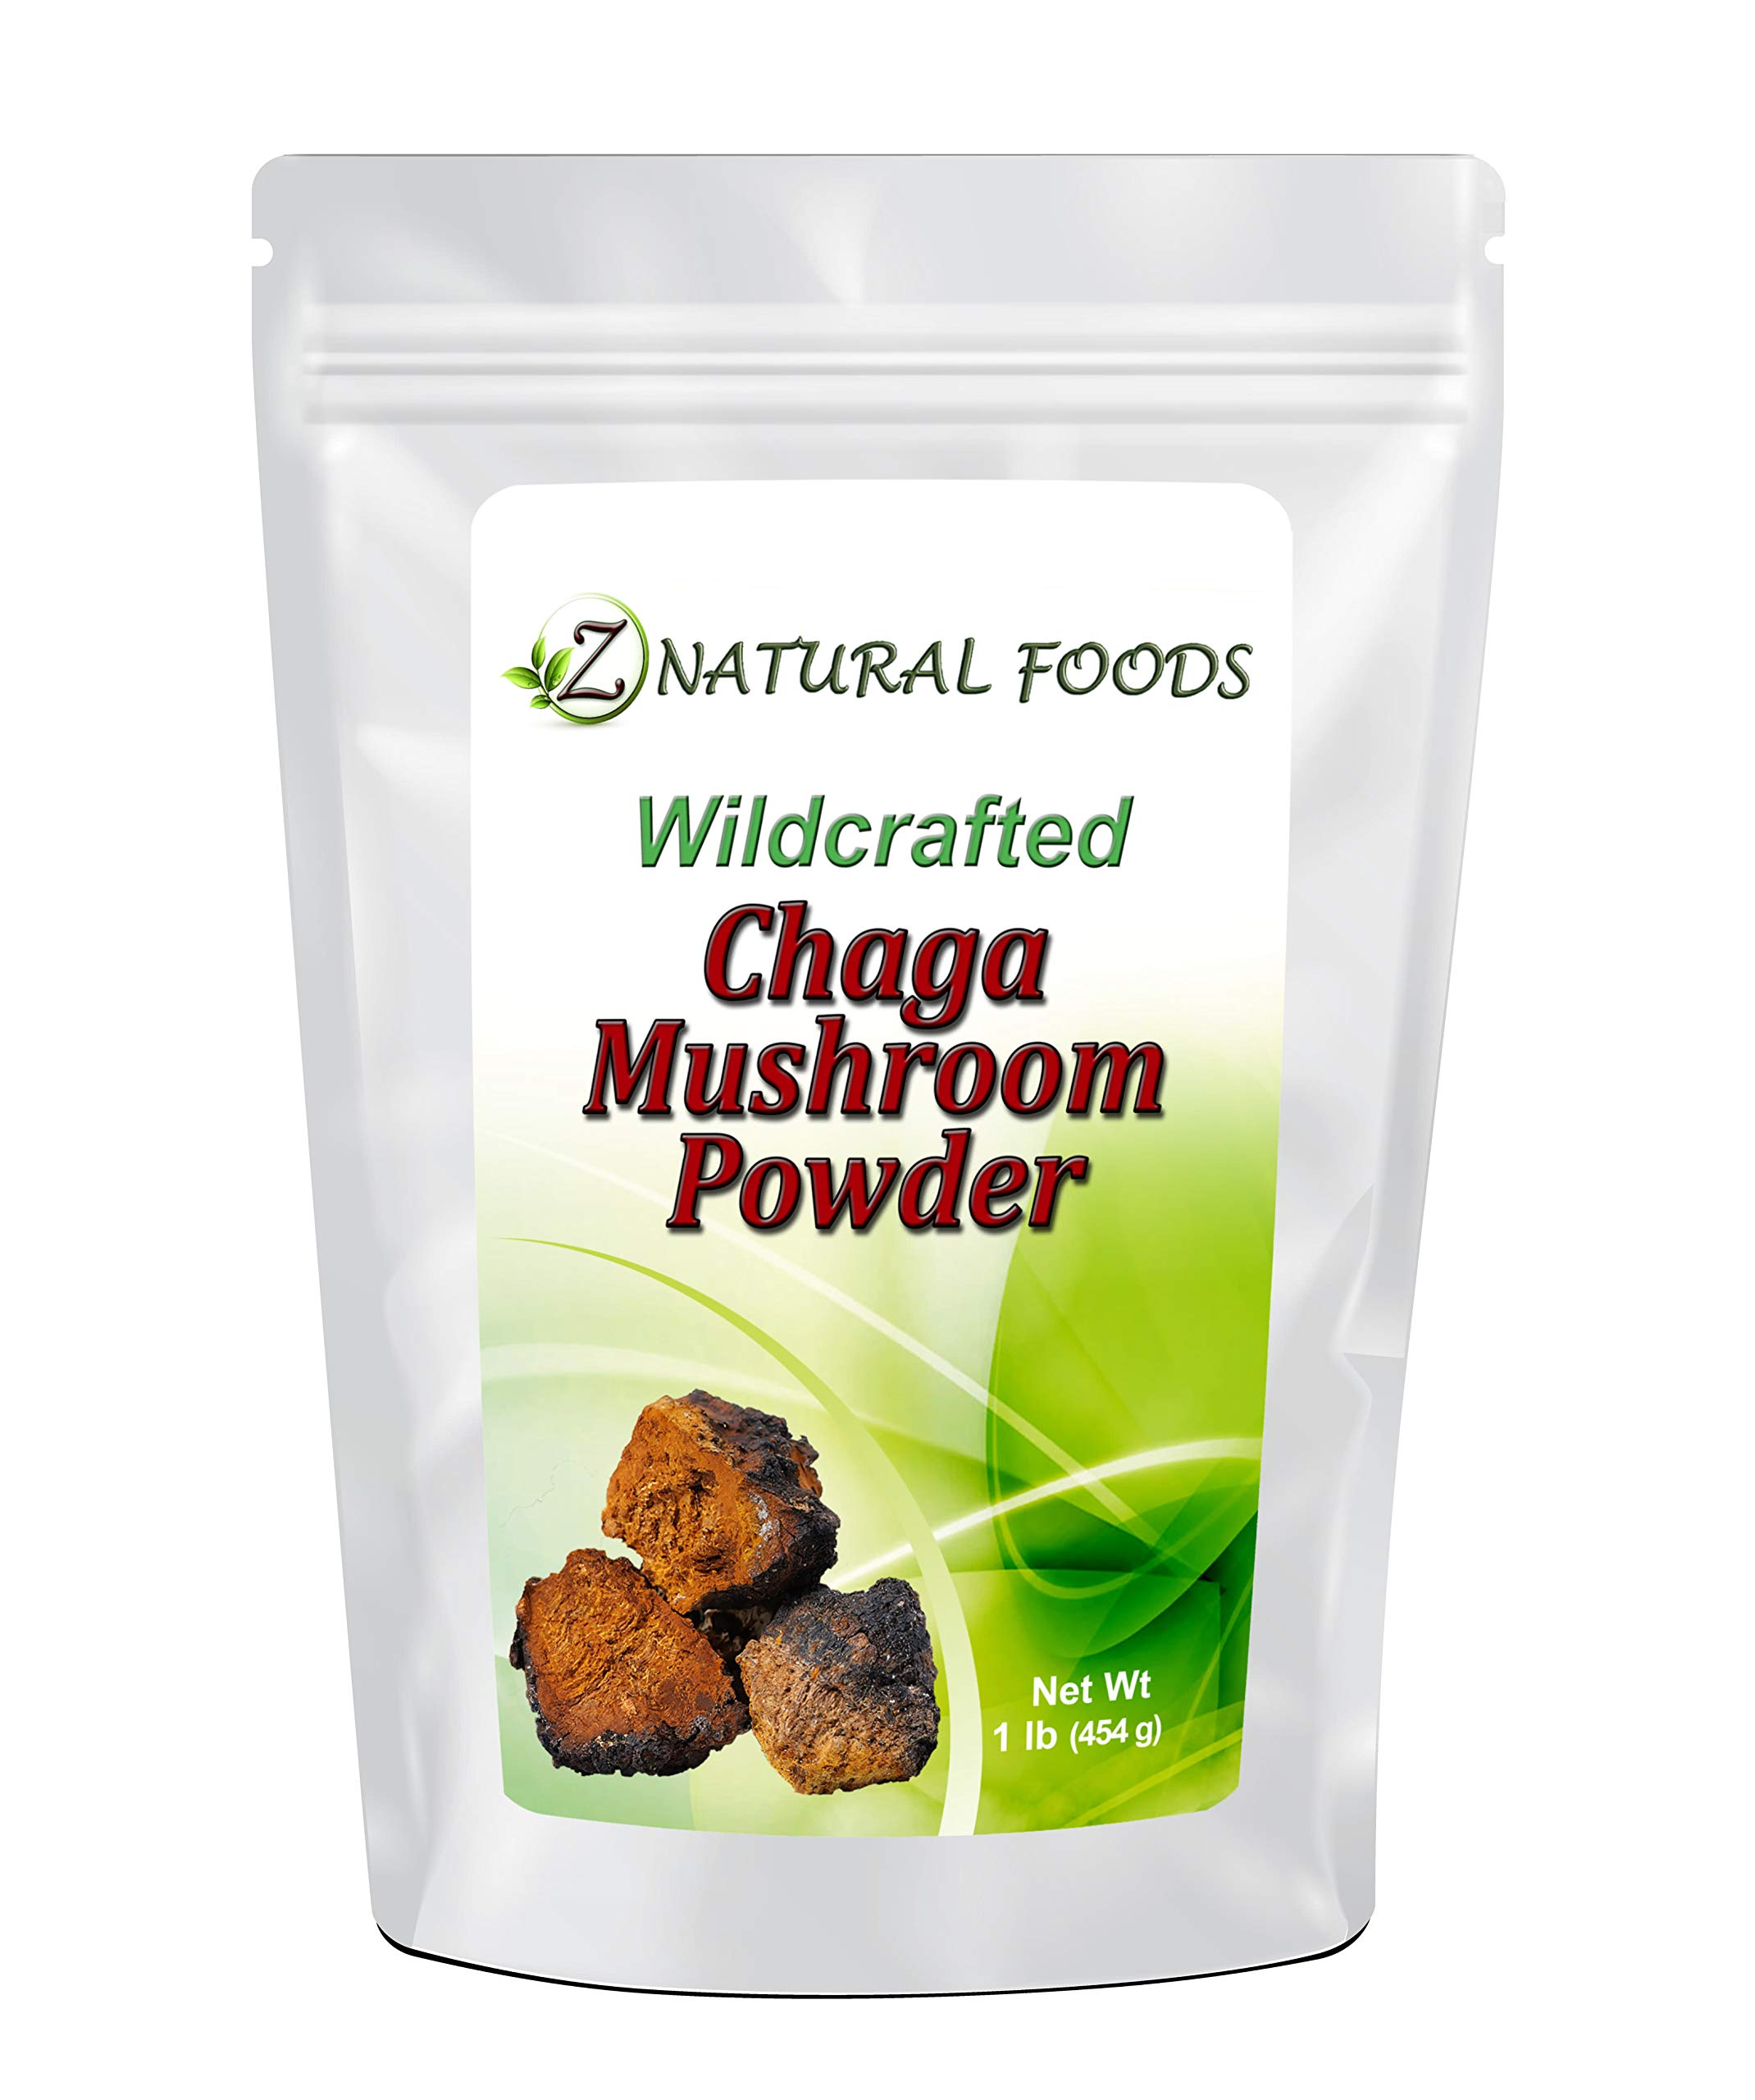 Chaga Mushroom Powder - 1 lb - Support Your Immune System & Antioxidant Benefits - Steep Like Tea or Add To Smoothies & Recipes - Wildcrafted In USA & Canada - Raw, Non-GMO by Z Natural Foods